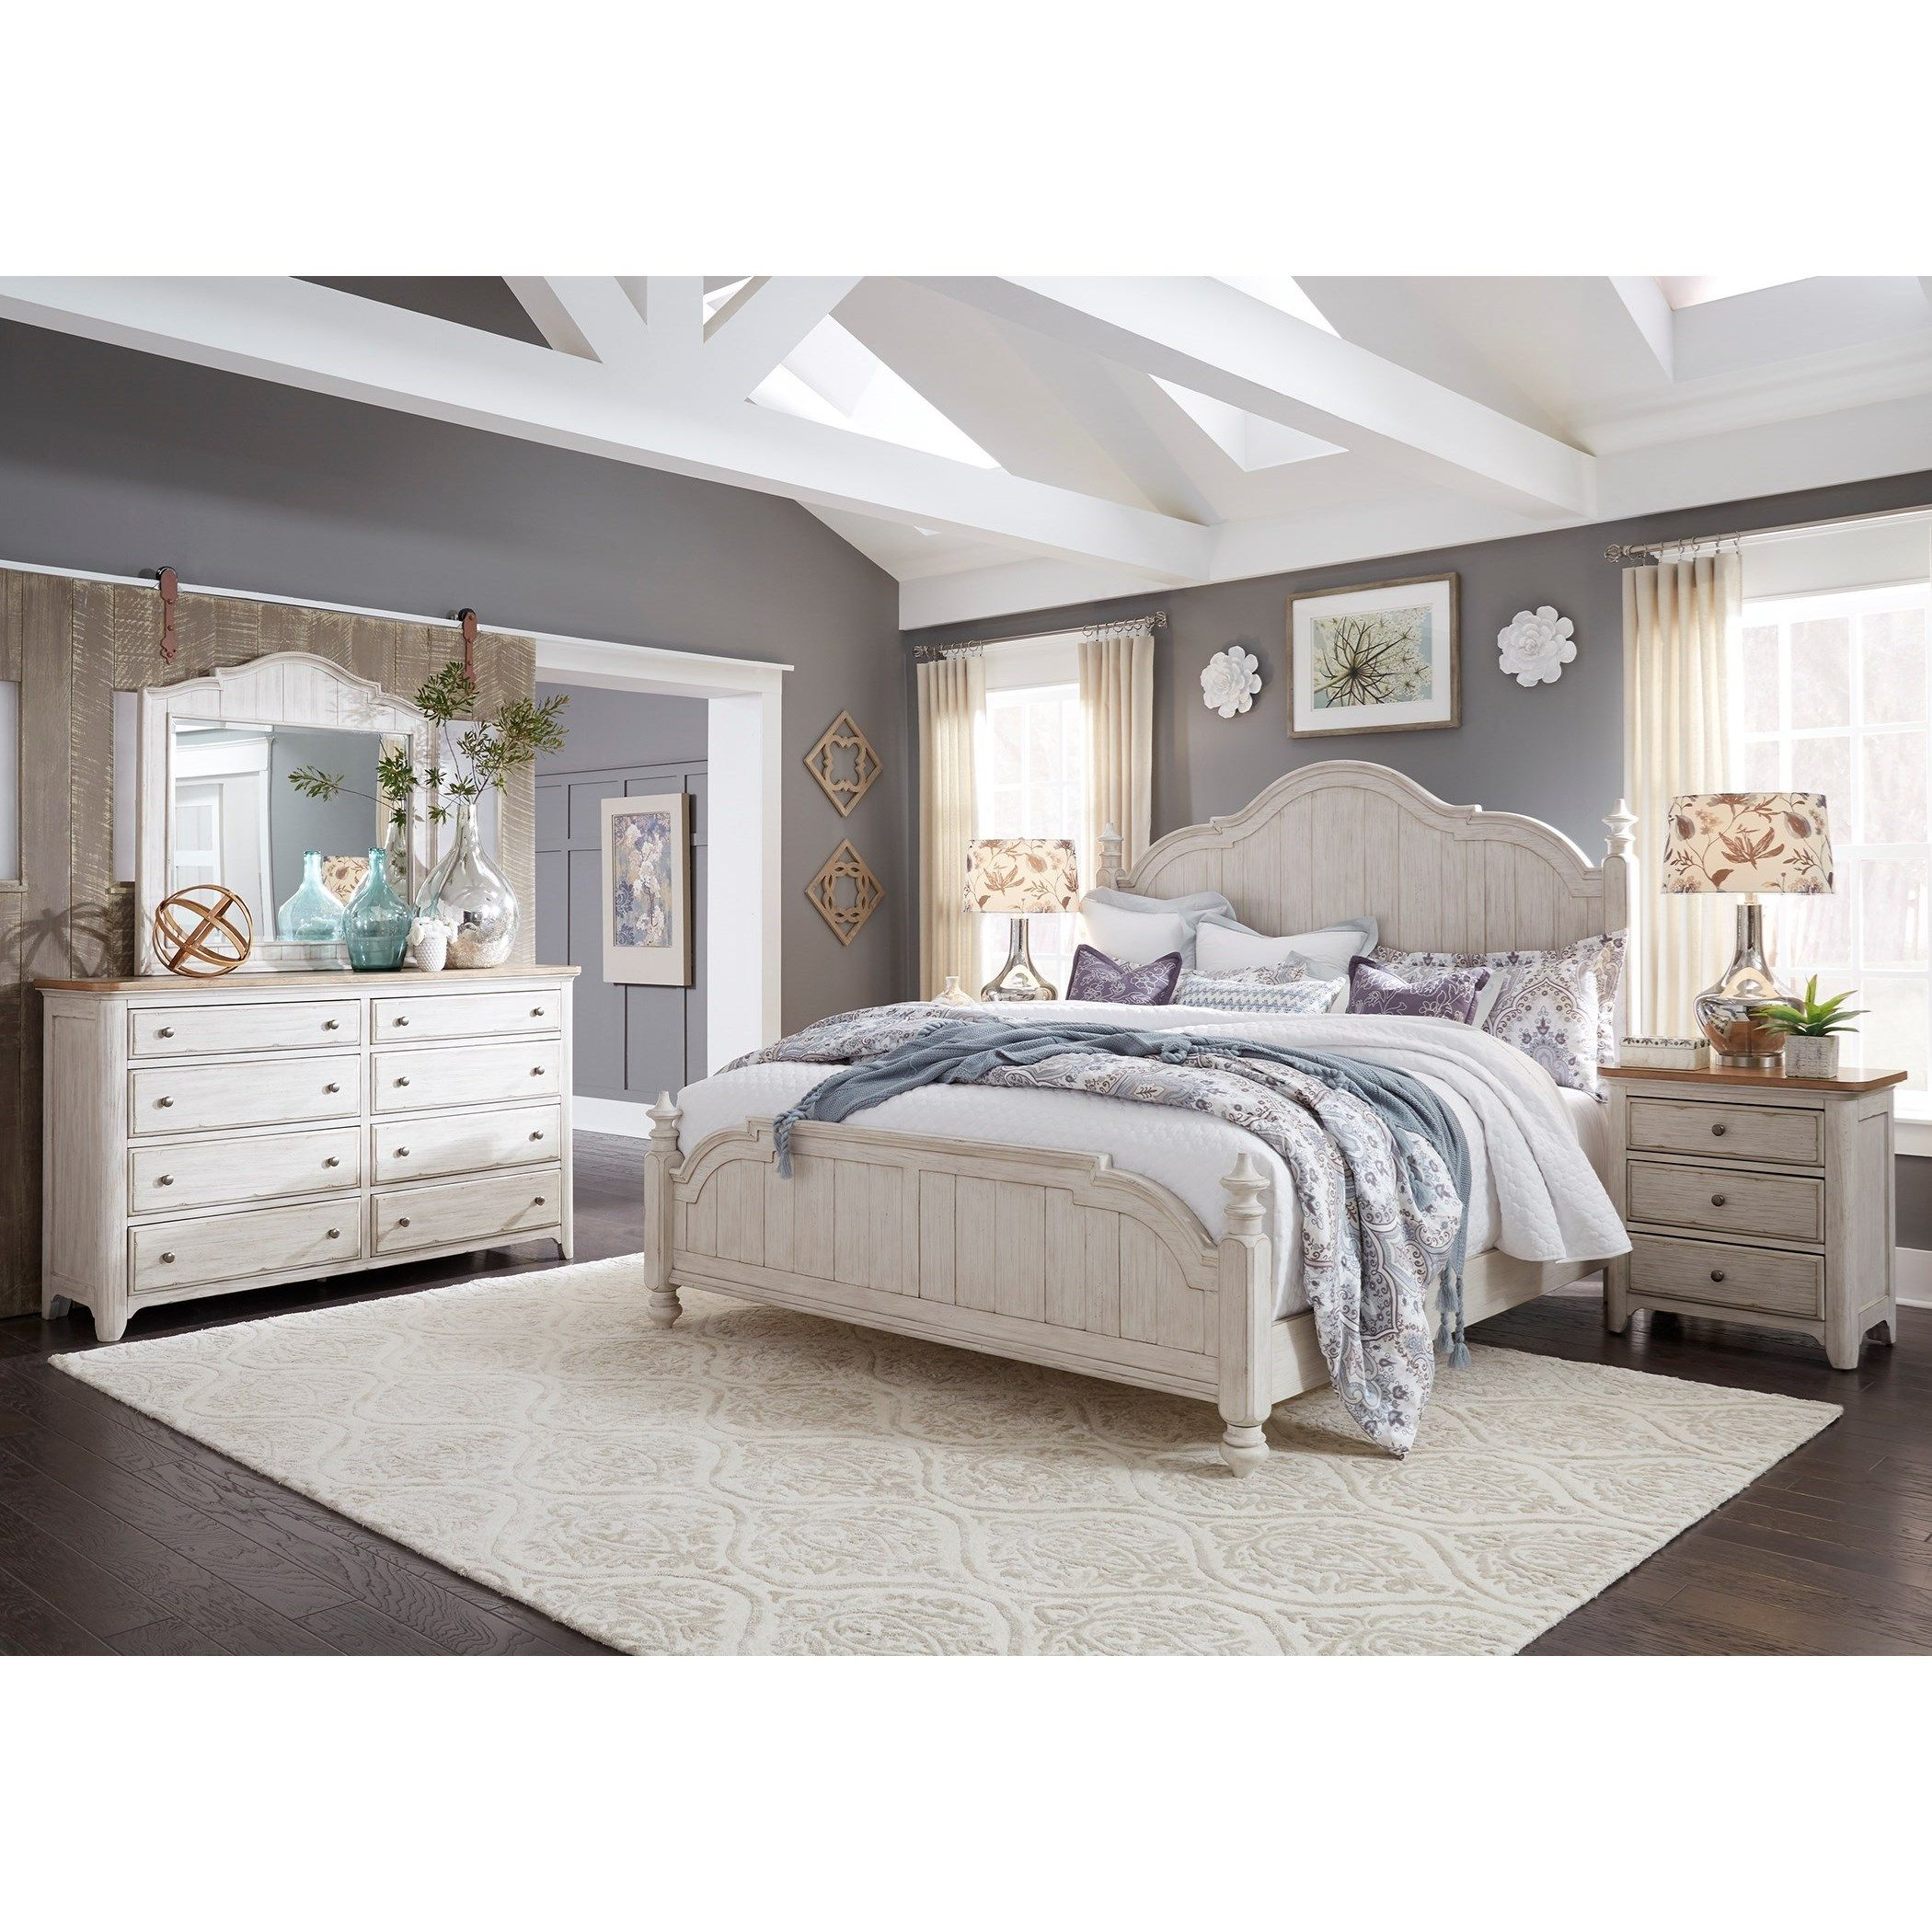 Farmhouse Reimagined King Bedroom Group By Liberty Furniture At Wayside Furniture Liberty Furniture Master Bedroom Furniture King Bedroom